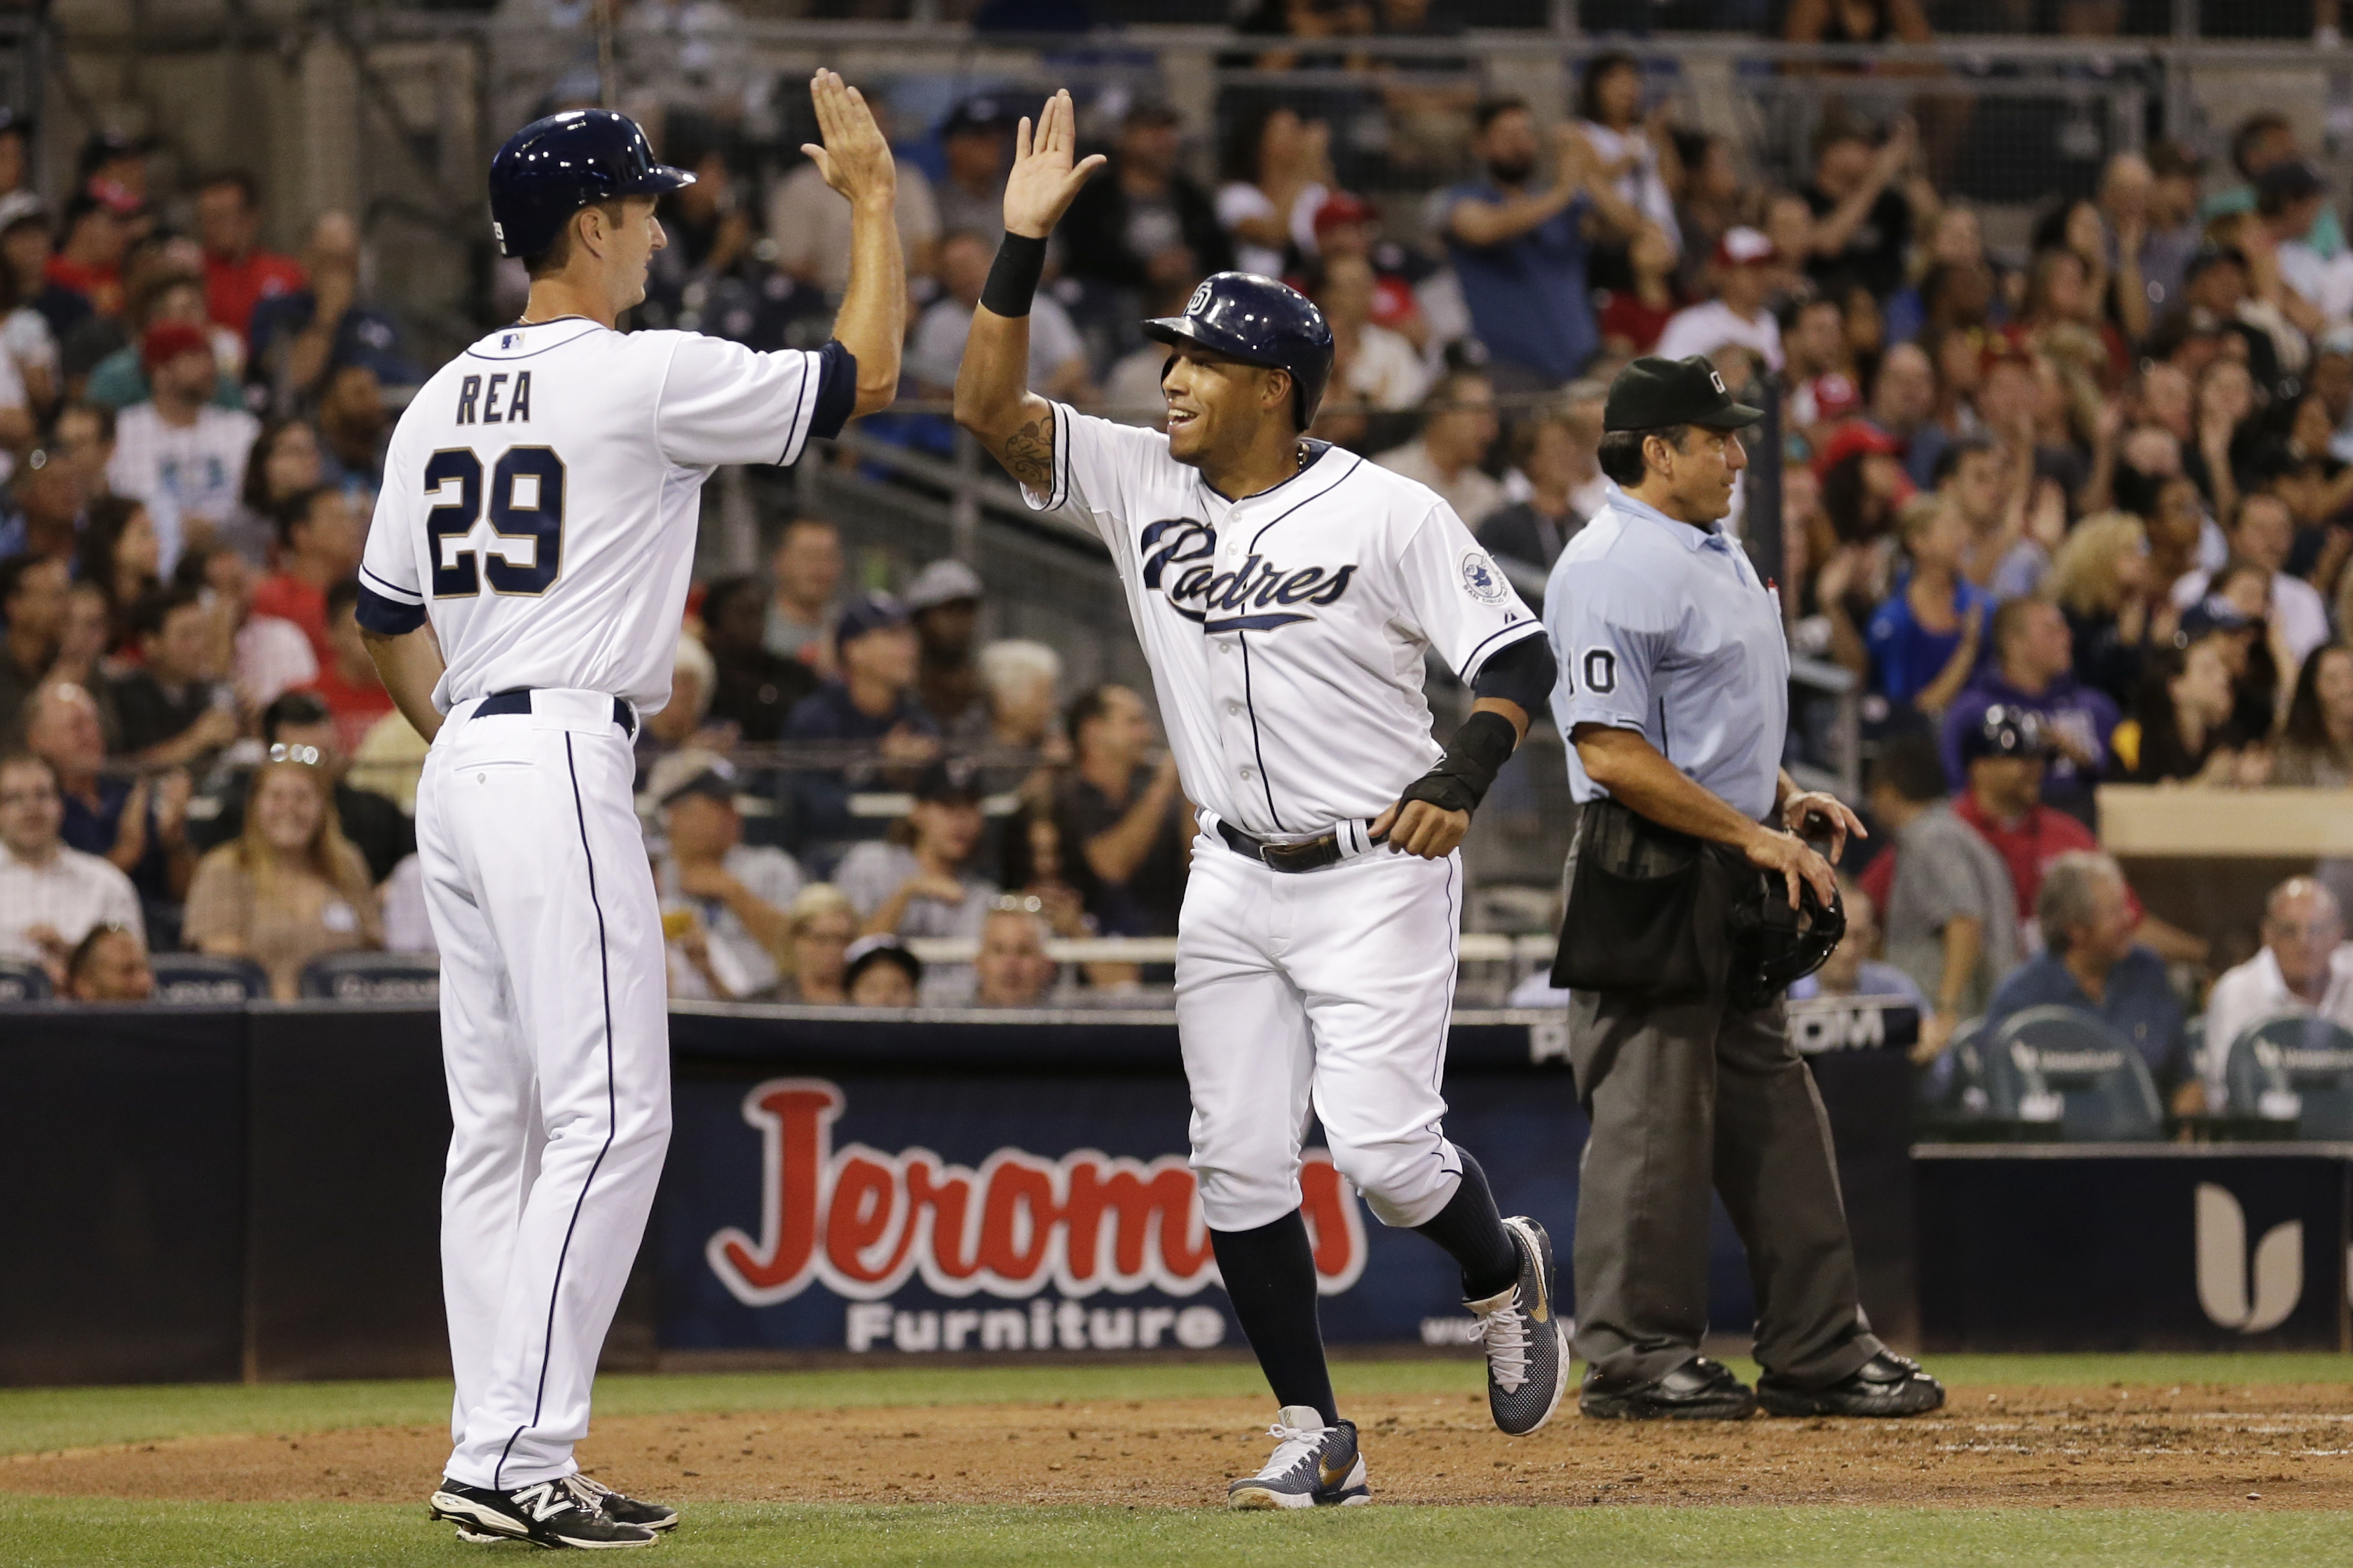 San Diego Padres' Yangervis Solarte, right, and teammate Colin Rea celebrate after scoring off a two-run double by Yonder Alonso against the Cincinnati Reds during the second inning of a baseball game, Tuesday, Aug. 11, 2015, in San Diego. (AP Photo/Grego